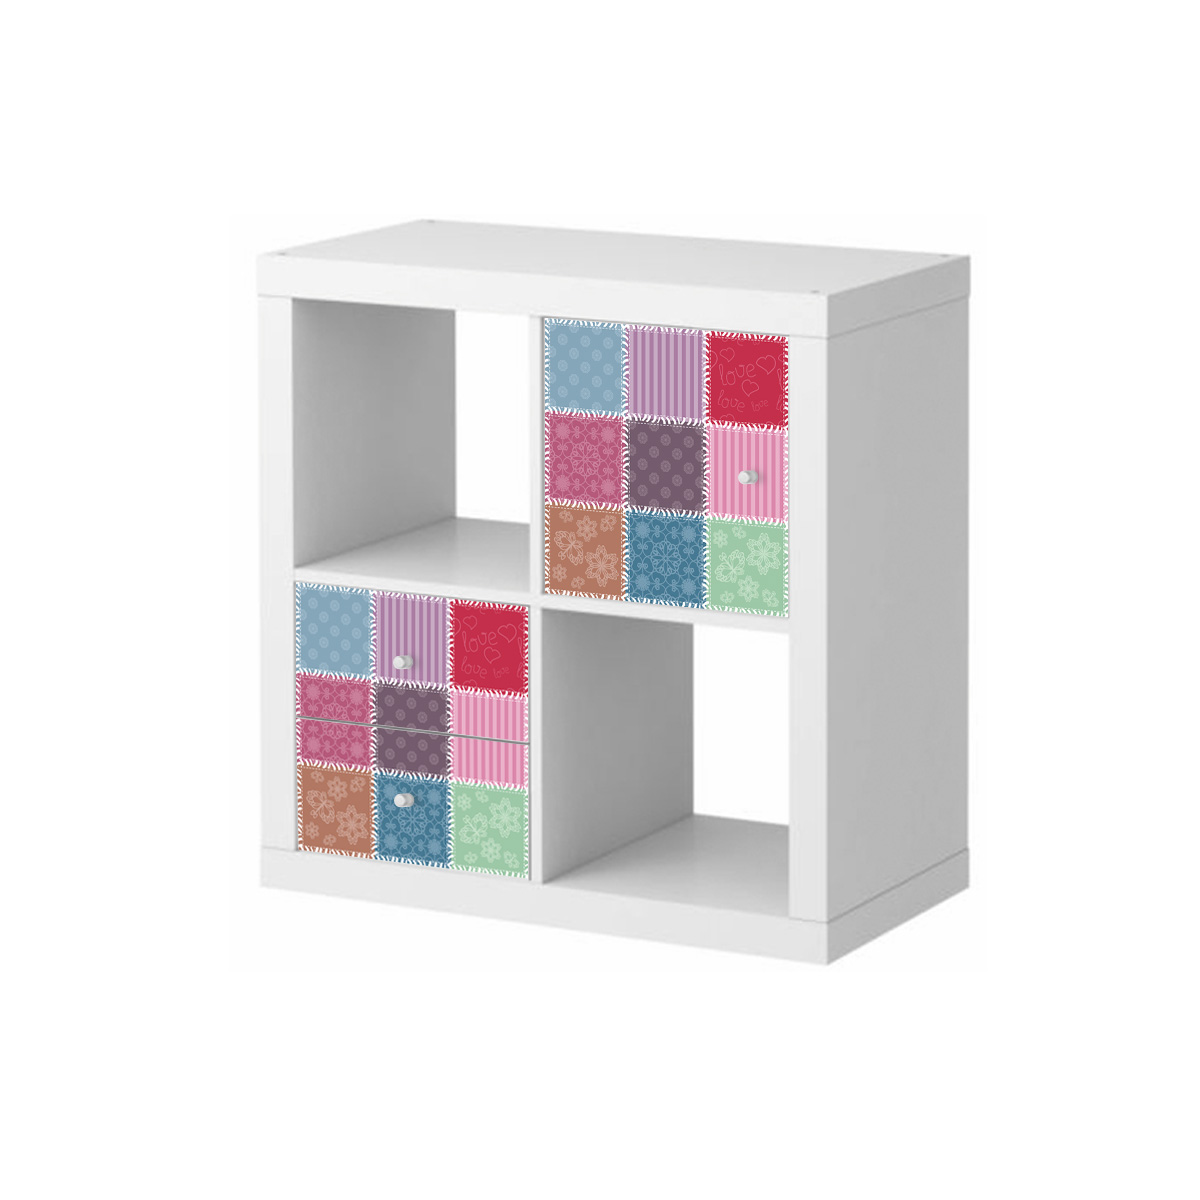 Sticker Meubles Ikea Sticker Meubles Ikea Patchwork With